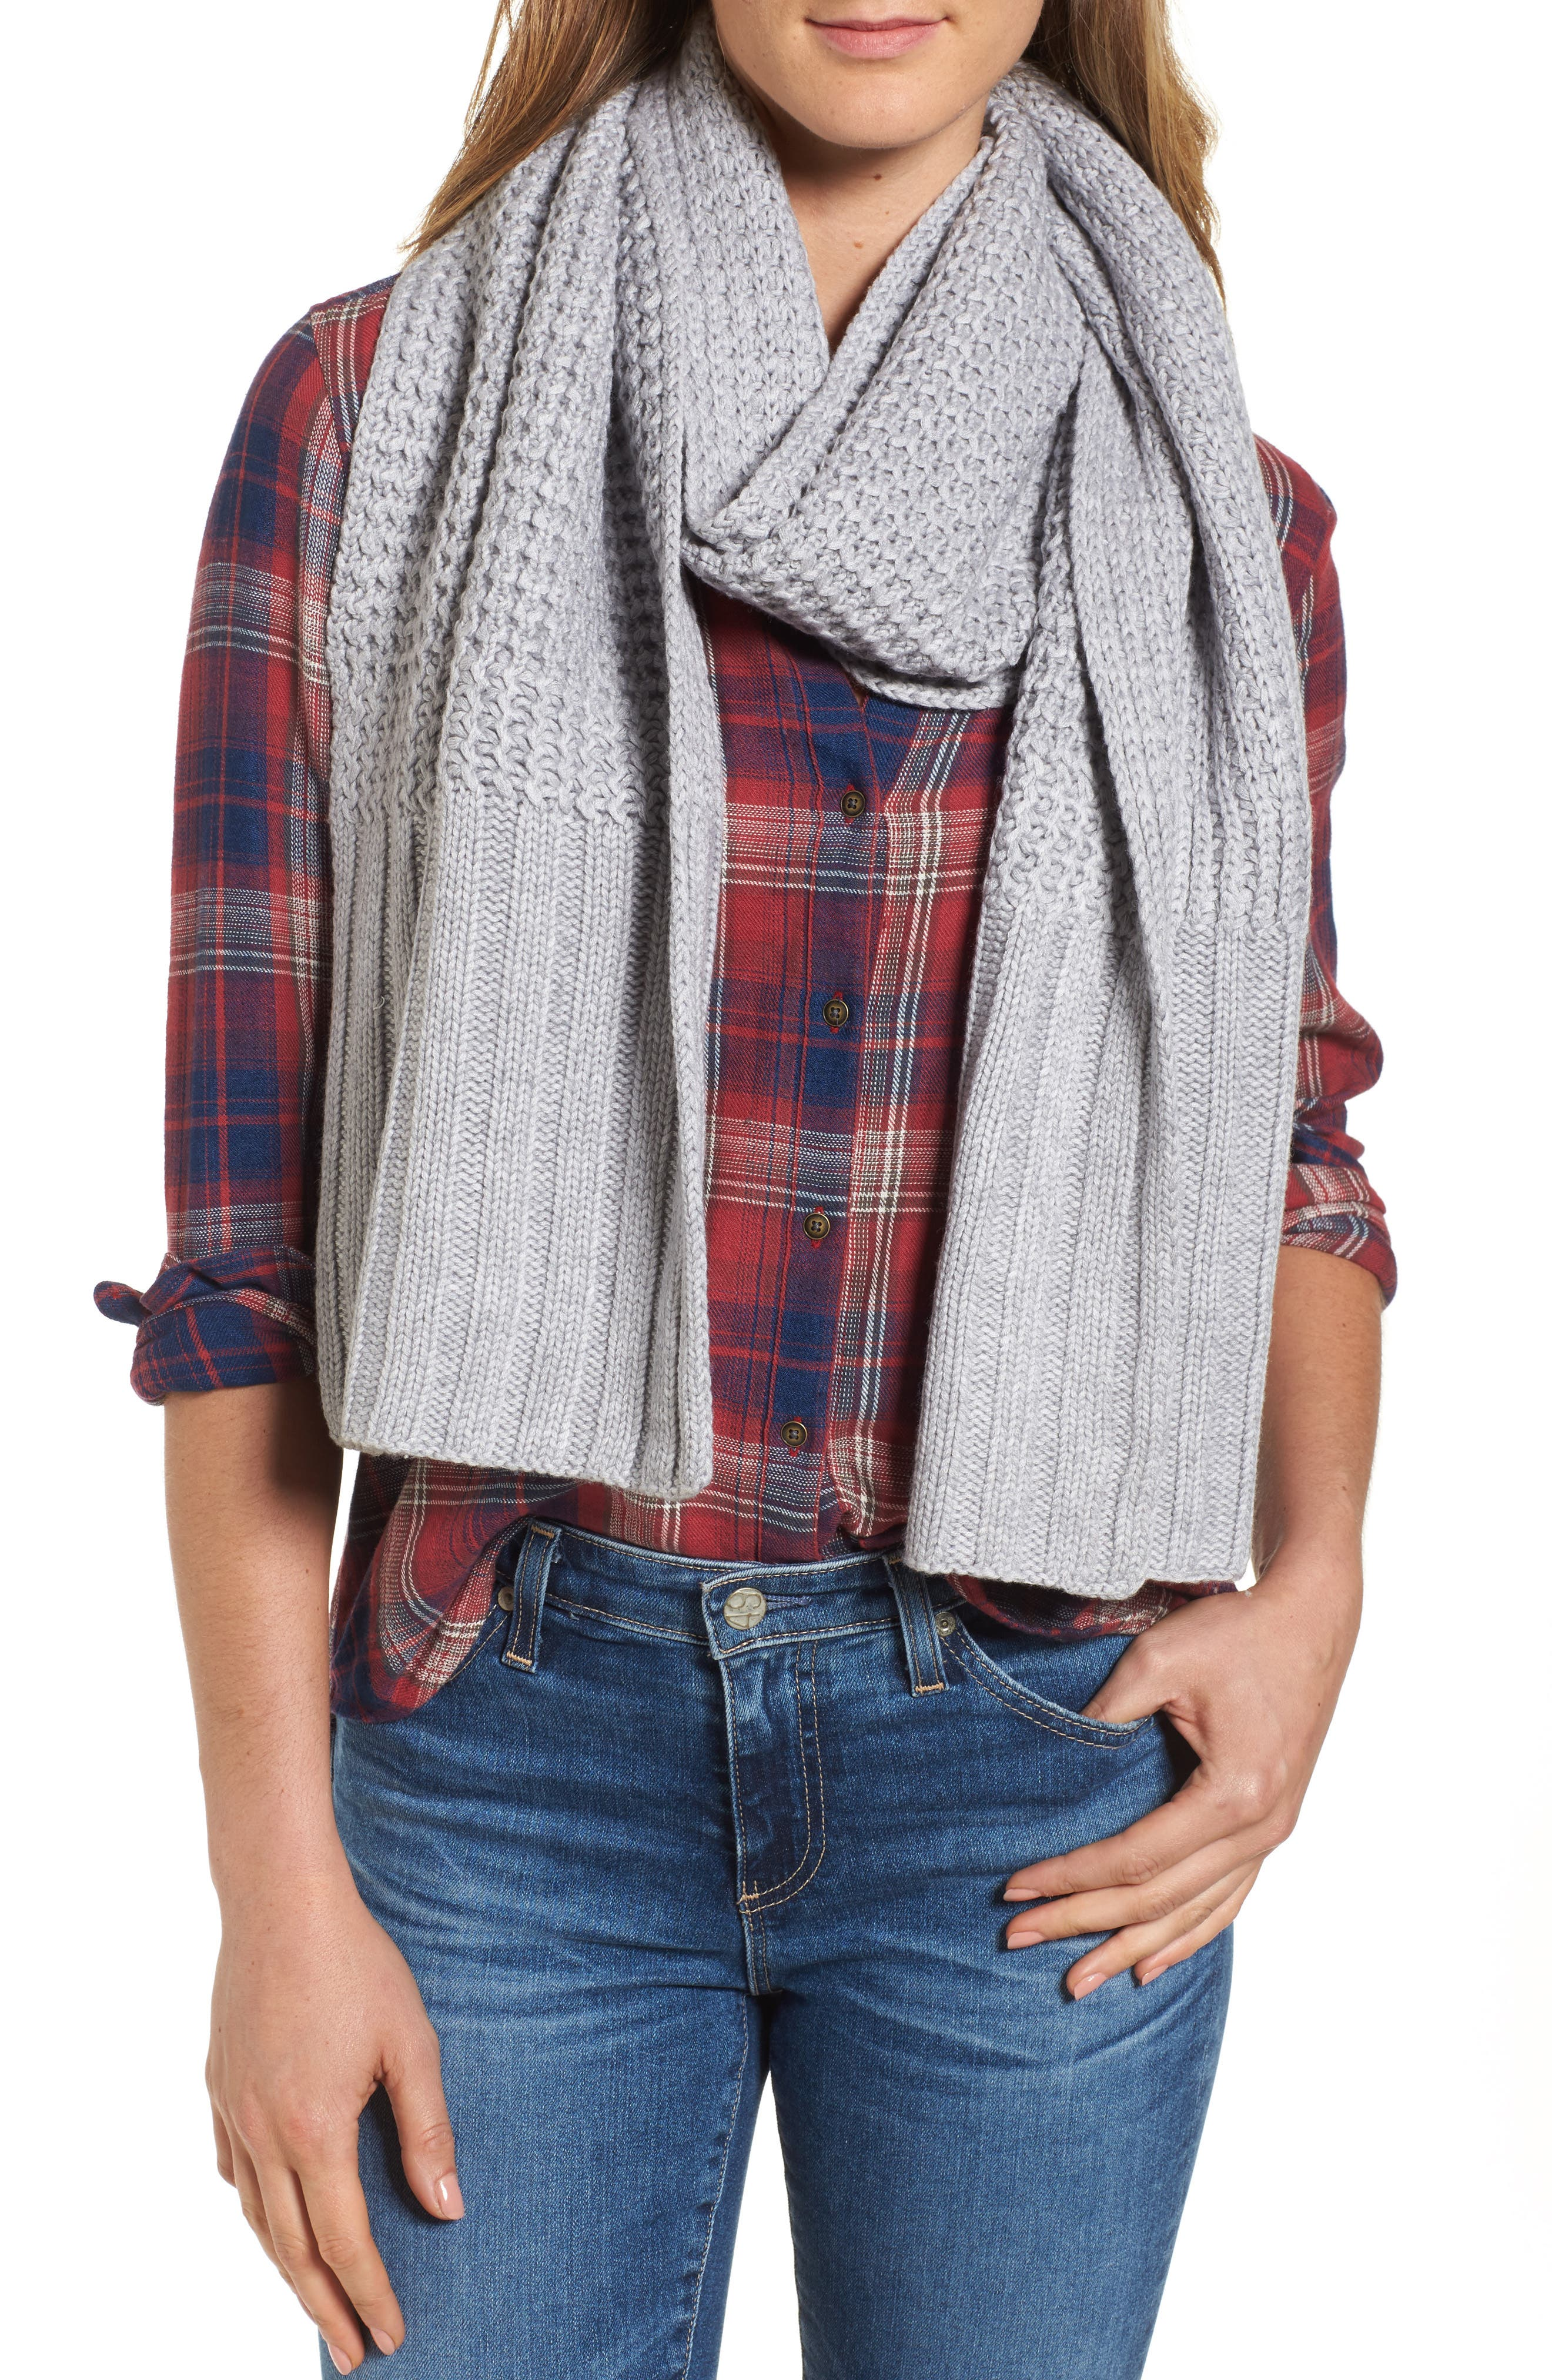 UGG<sup>®</sup> Textured Wool Blend Cardi Scarf,                         Main,                         color, Sterling Heather